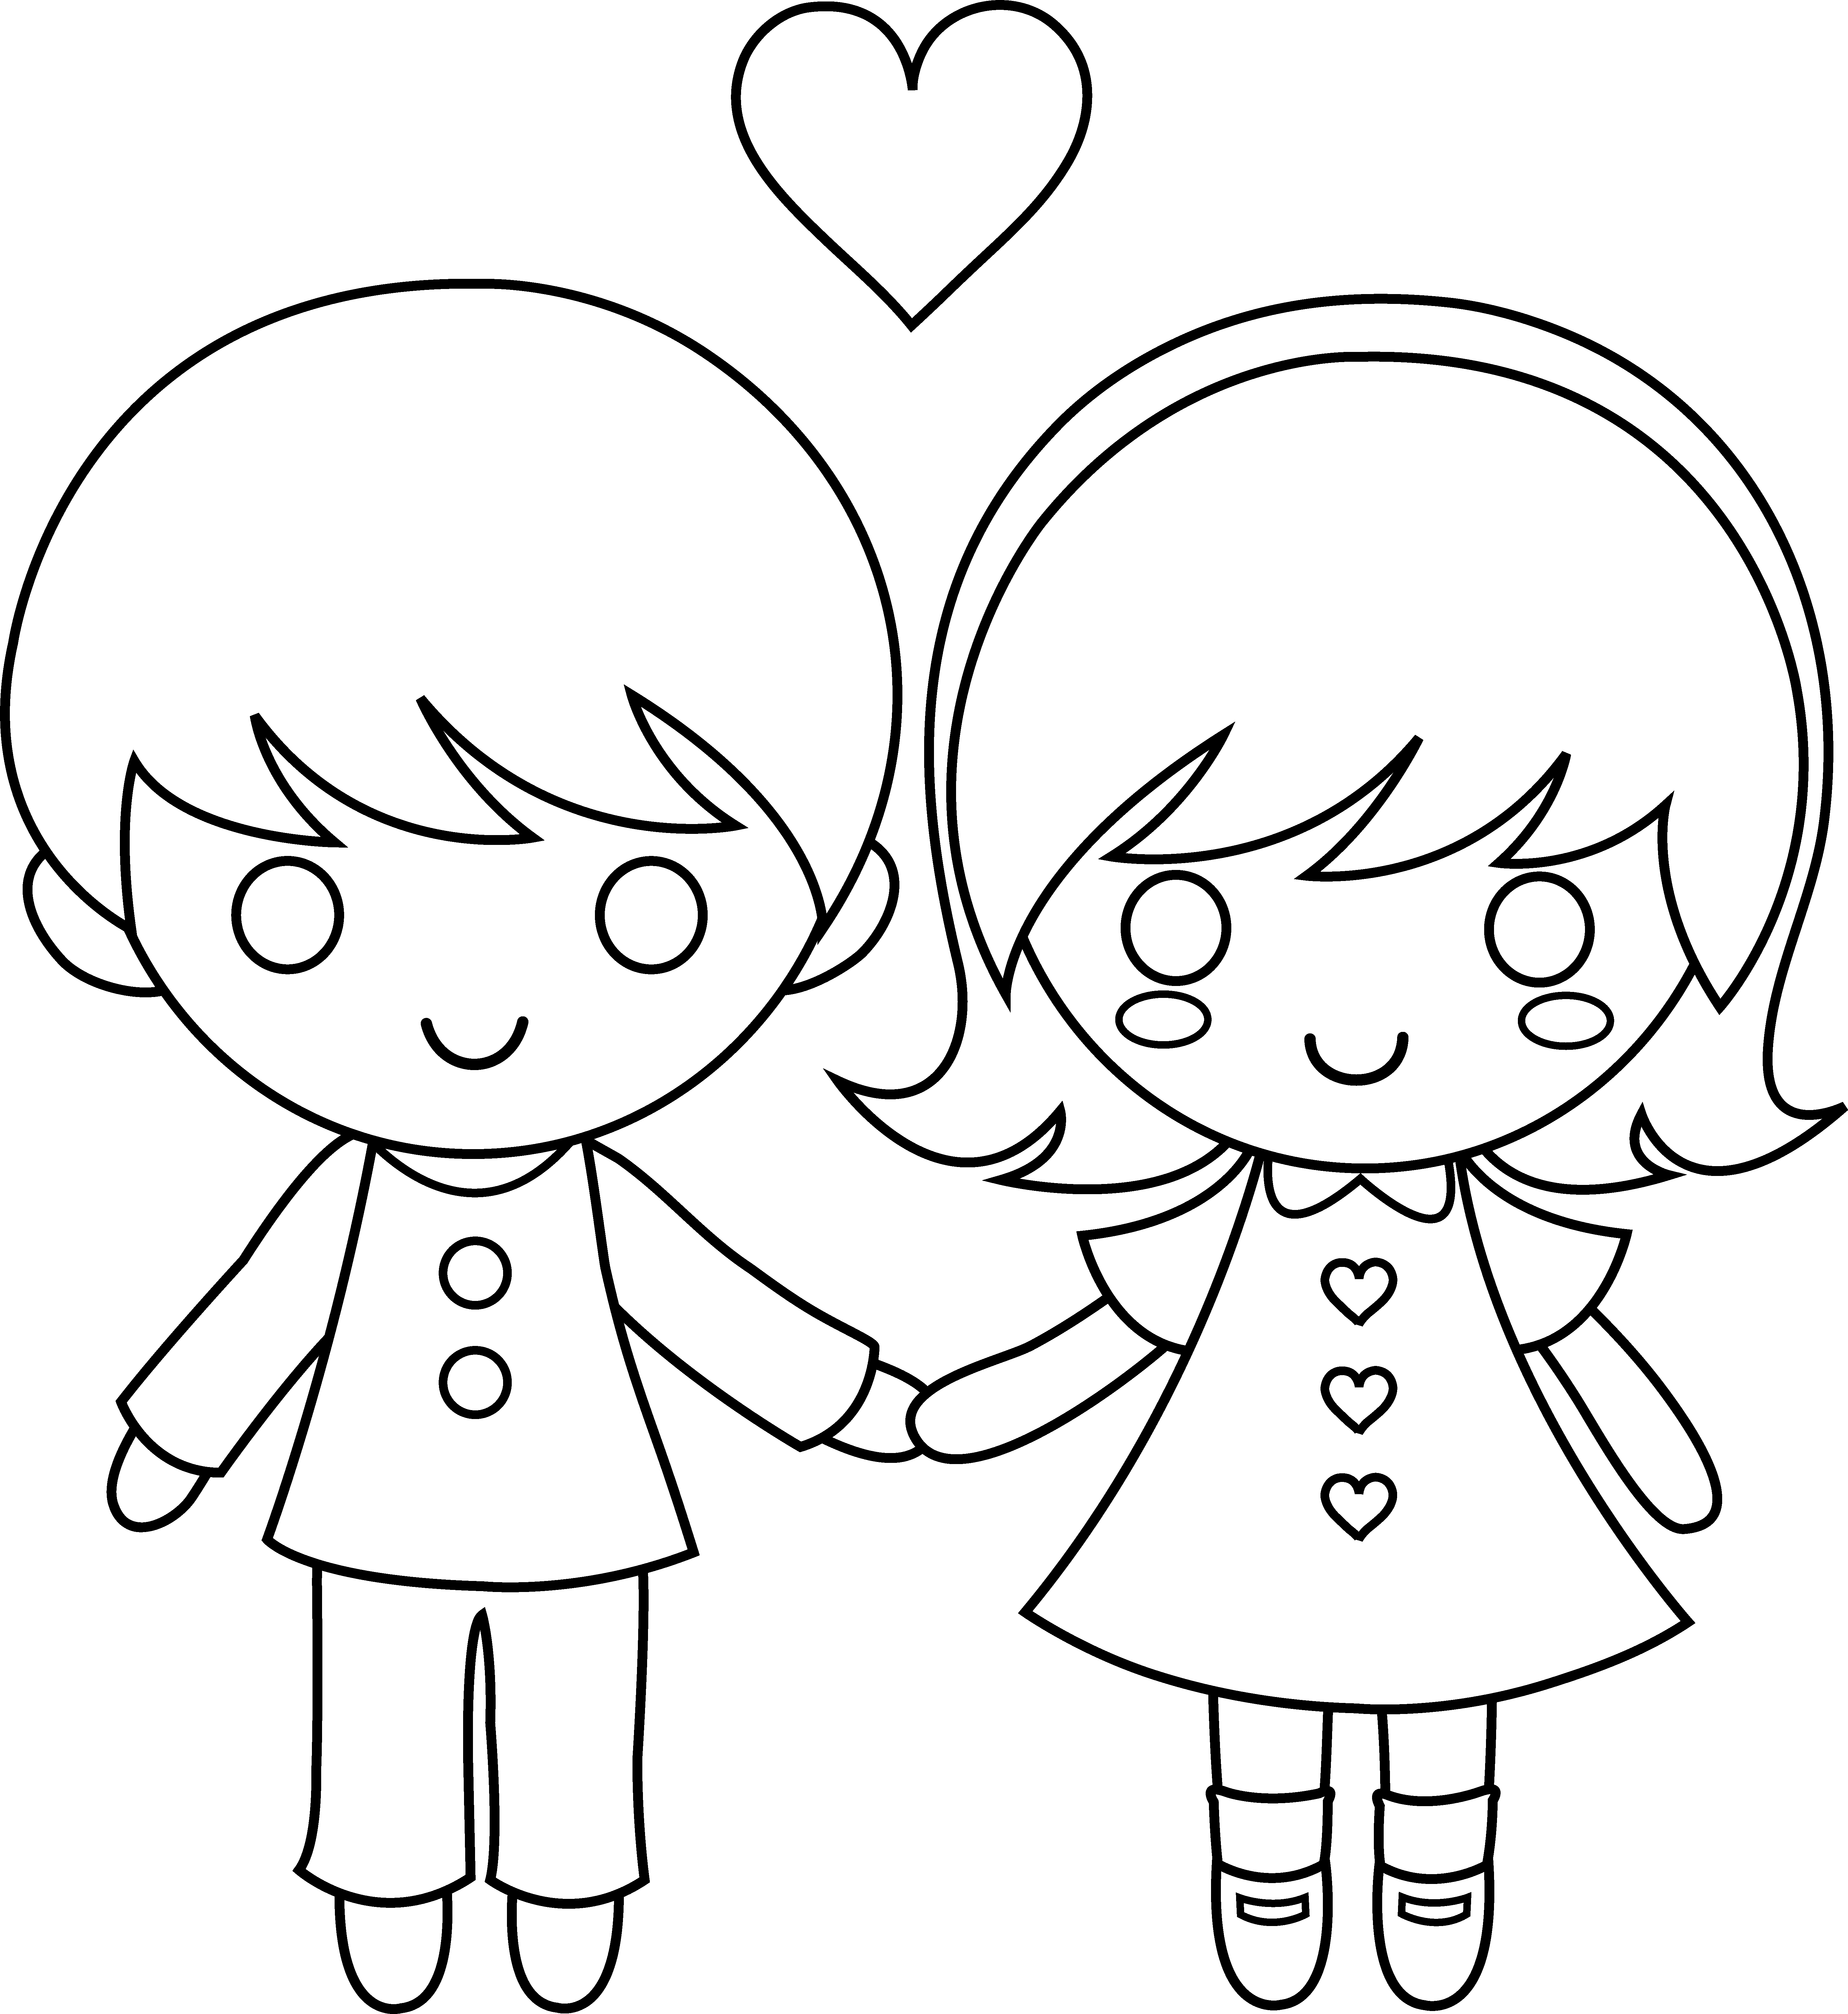 happy valentines day clip art black and white